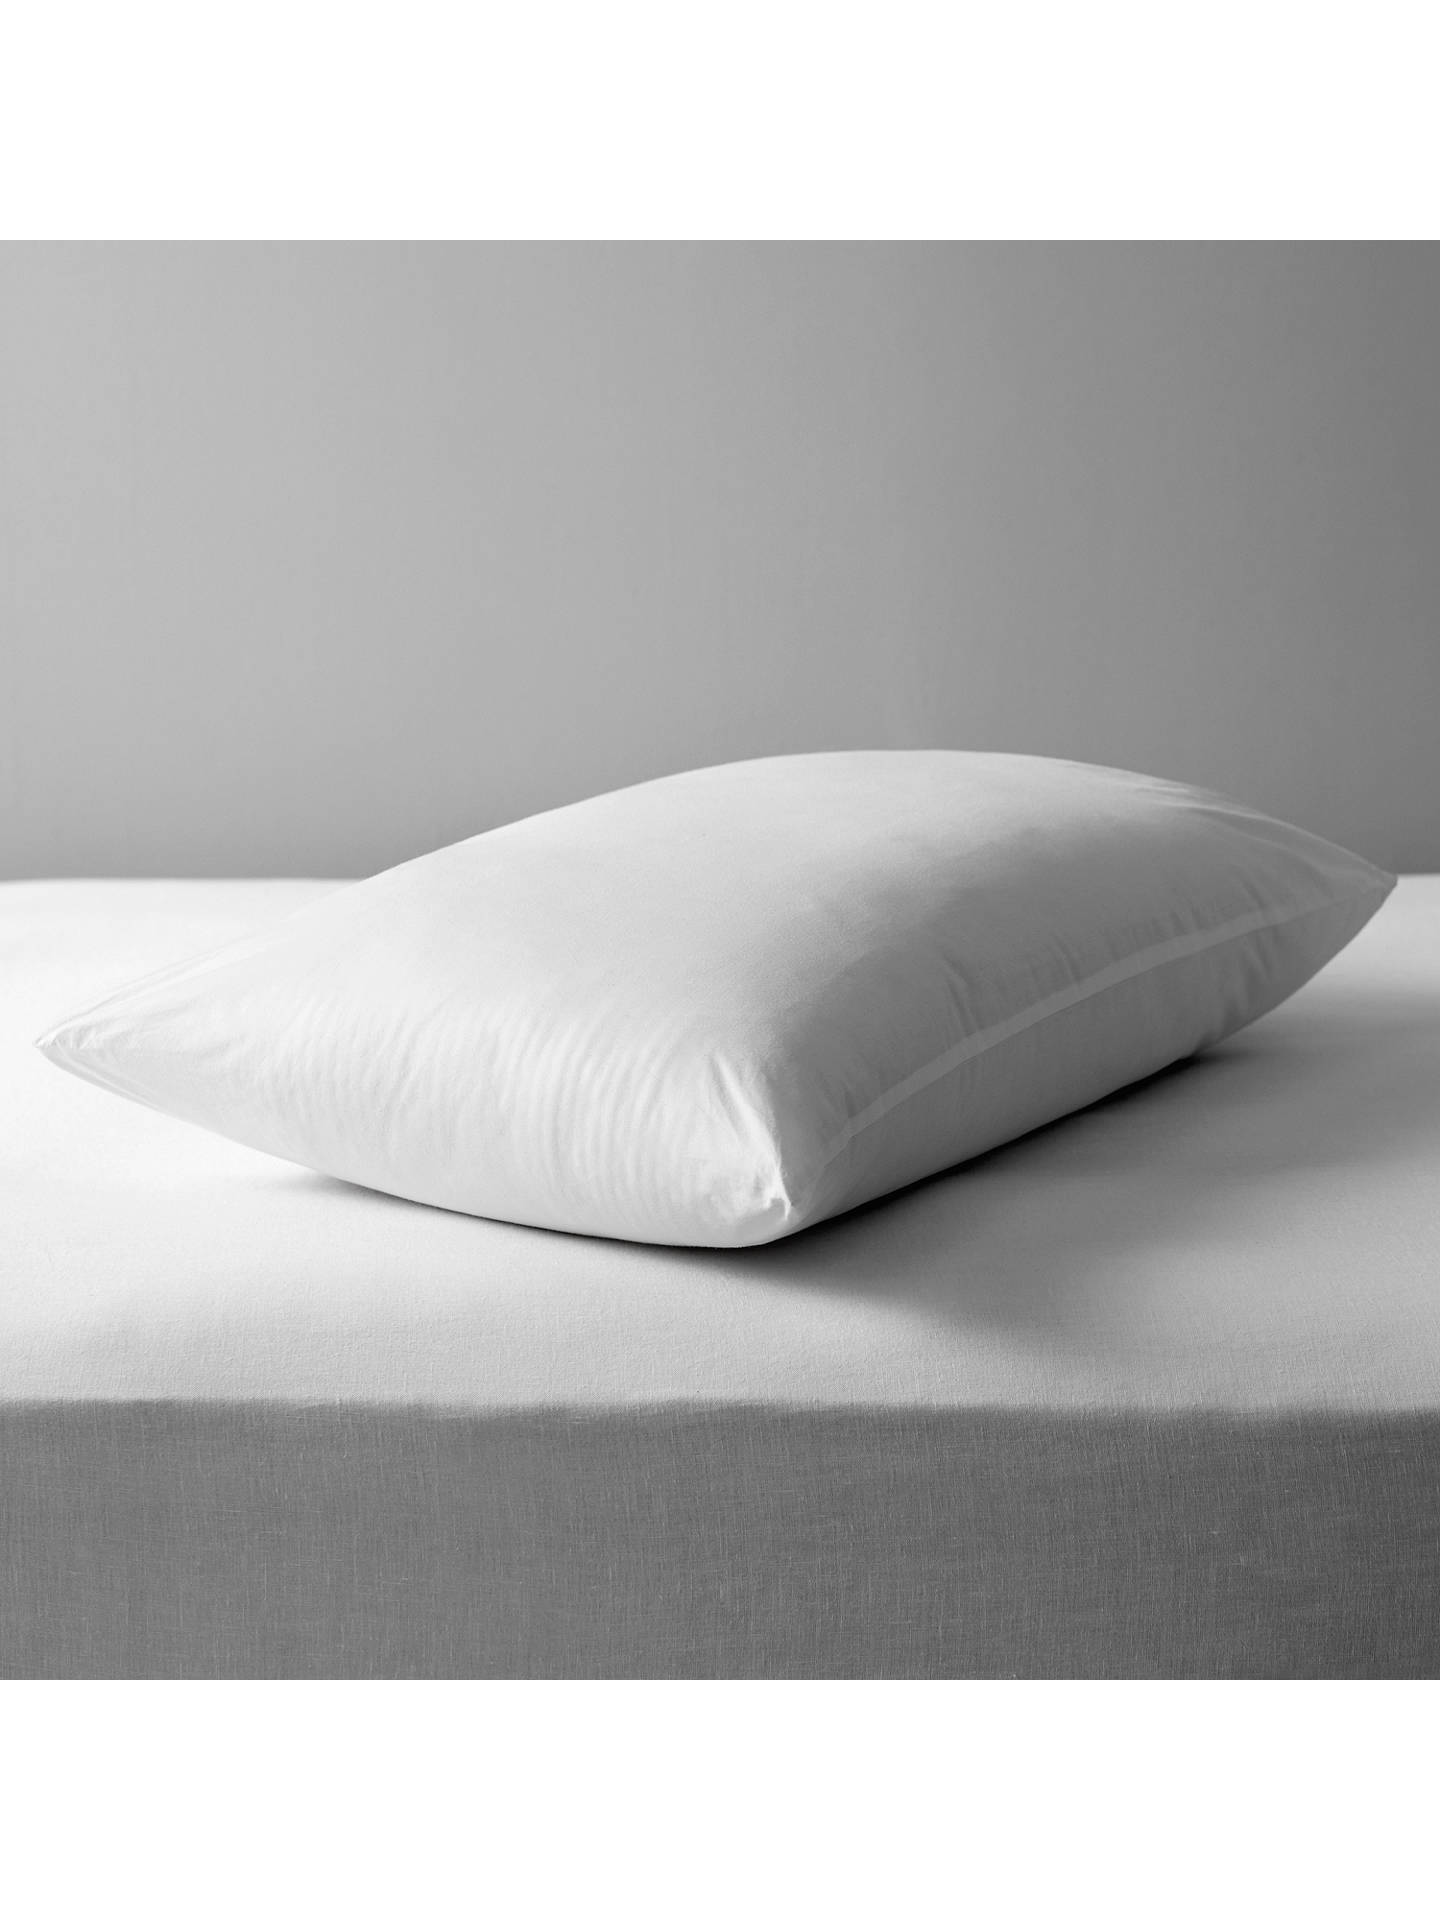 BuyDevon Duvets Wool Standard Pillow Online at johnlewis.com